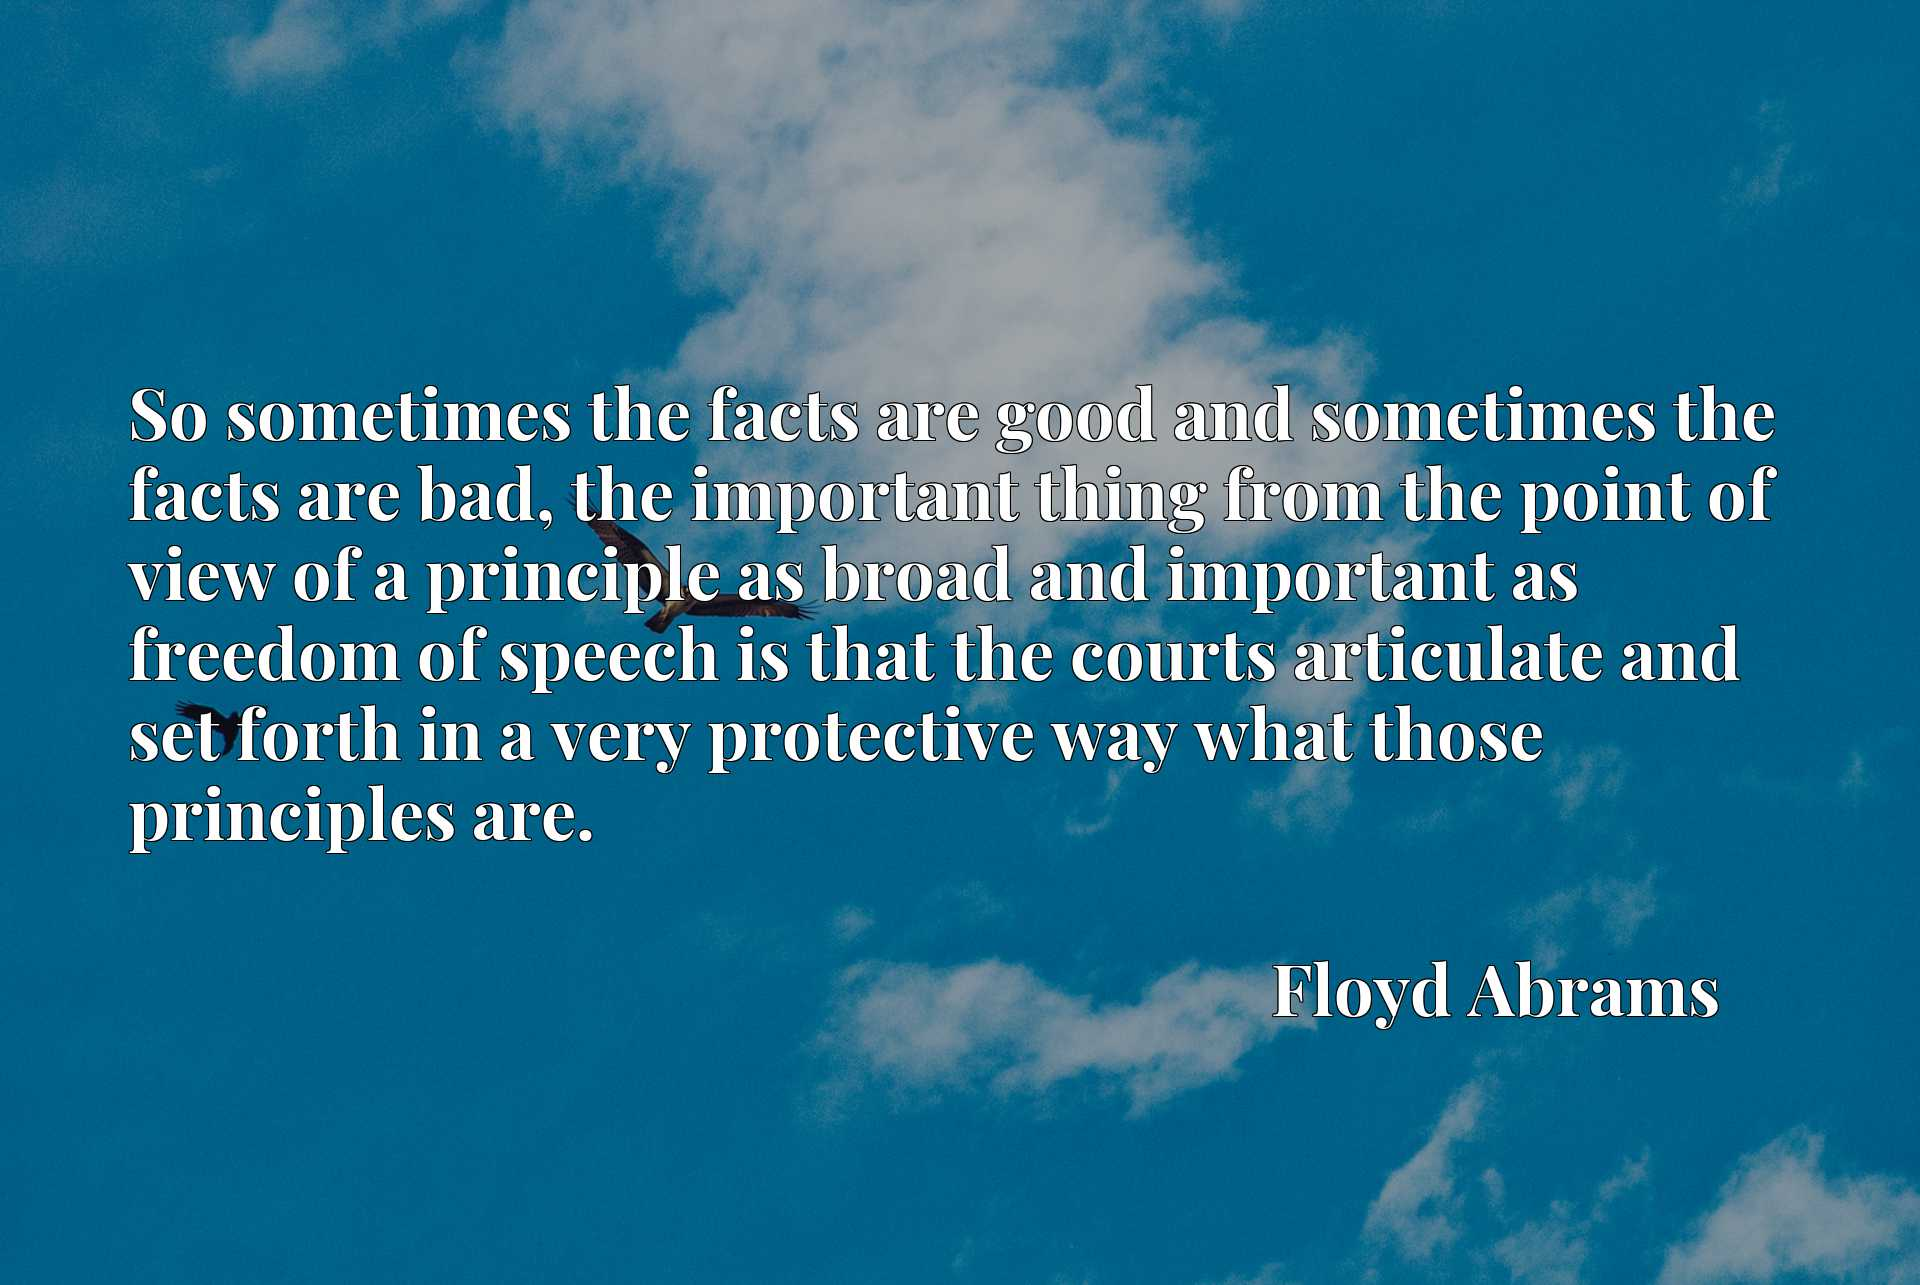 So sometimes the facts are good and sometimes the facts are bad, the important thing from the point of view of a principle as broad and important as freedom of speech is that the courts articulate and set forth in a very protective way what those principles are.